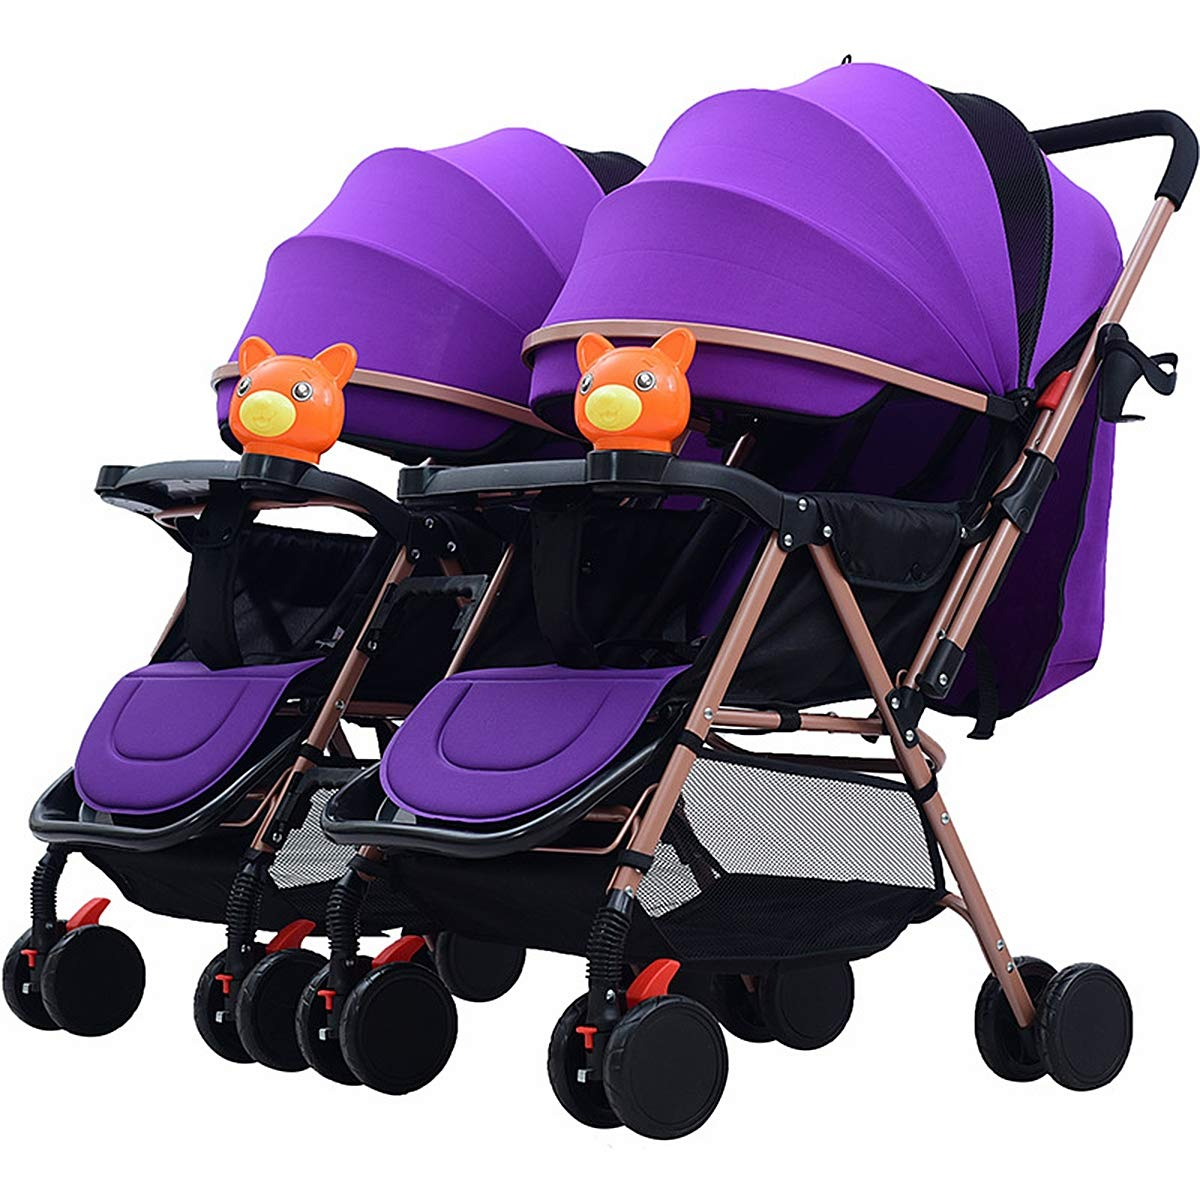 Eustoma Folding Twin Stroller, Foldable Lightweight Carriage Sit Reclining Double Stroller with Awning and Shock Absorber Function,Purple